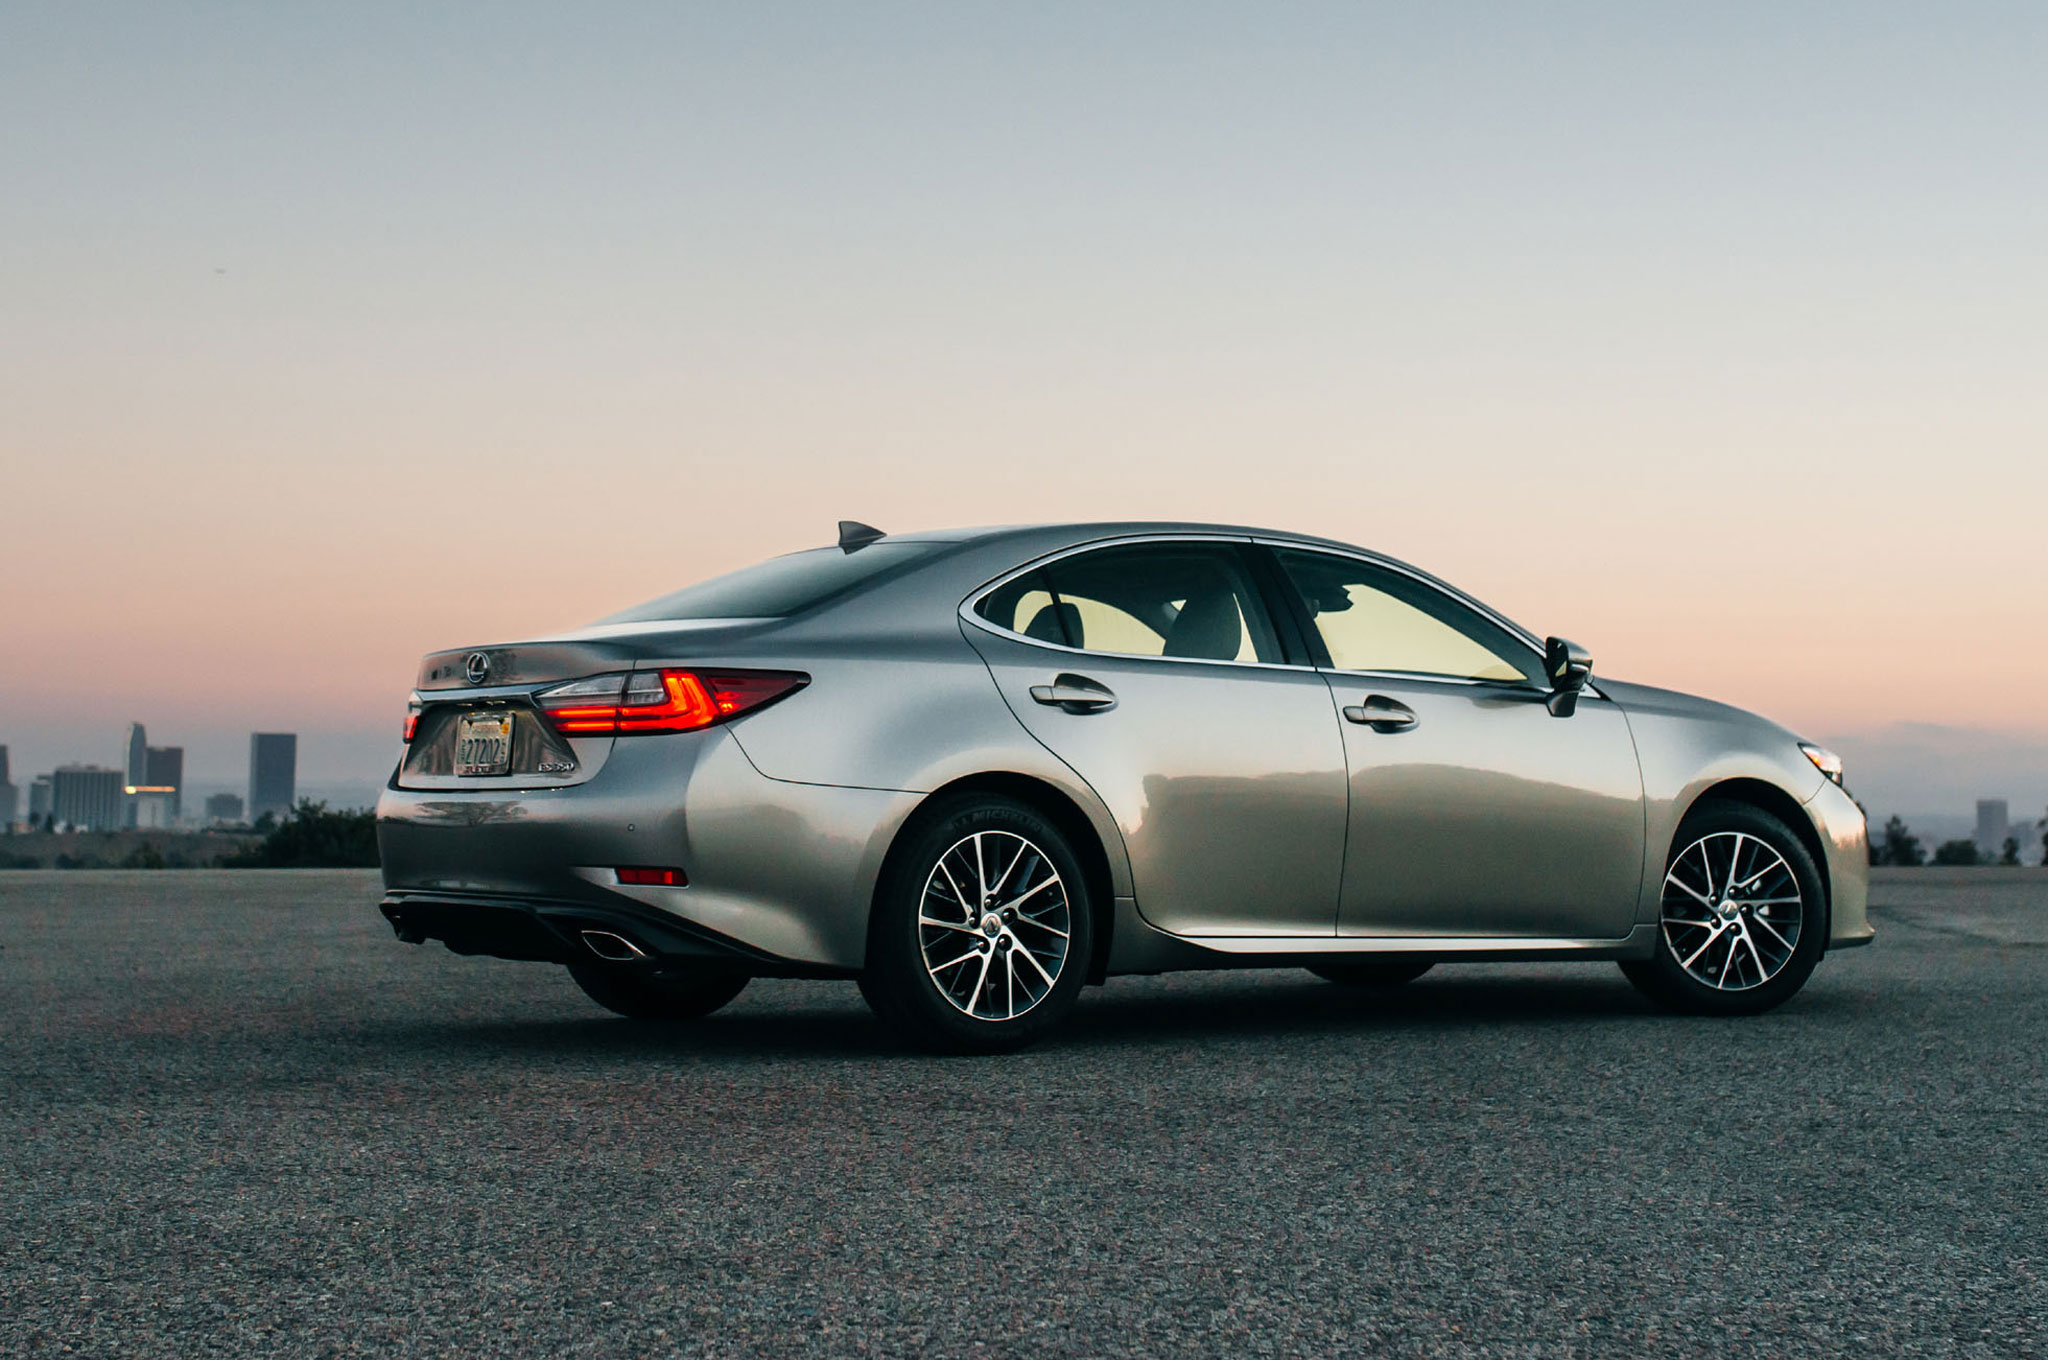 http://st.automobilemag.com/uploads/sites/10/2015/09/2016-Lexus-ES-350-rear-three-quarter-02.jpg